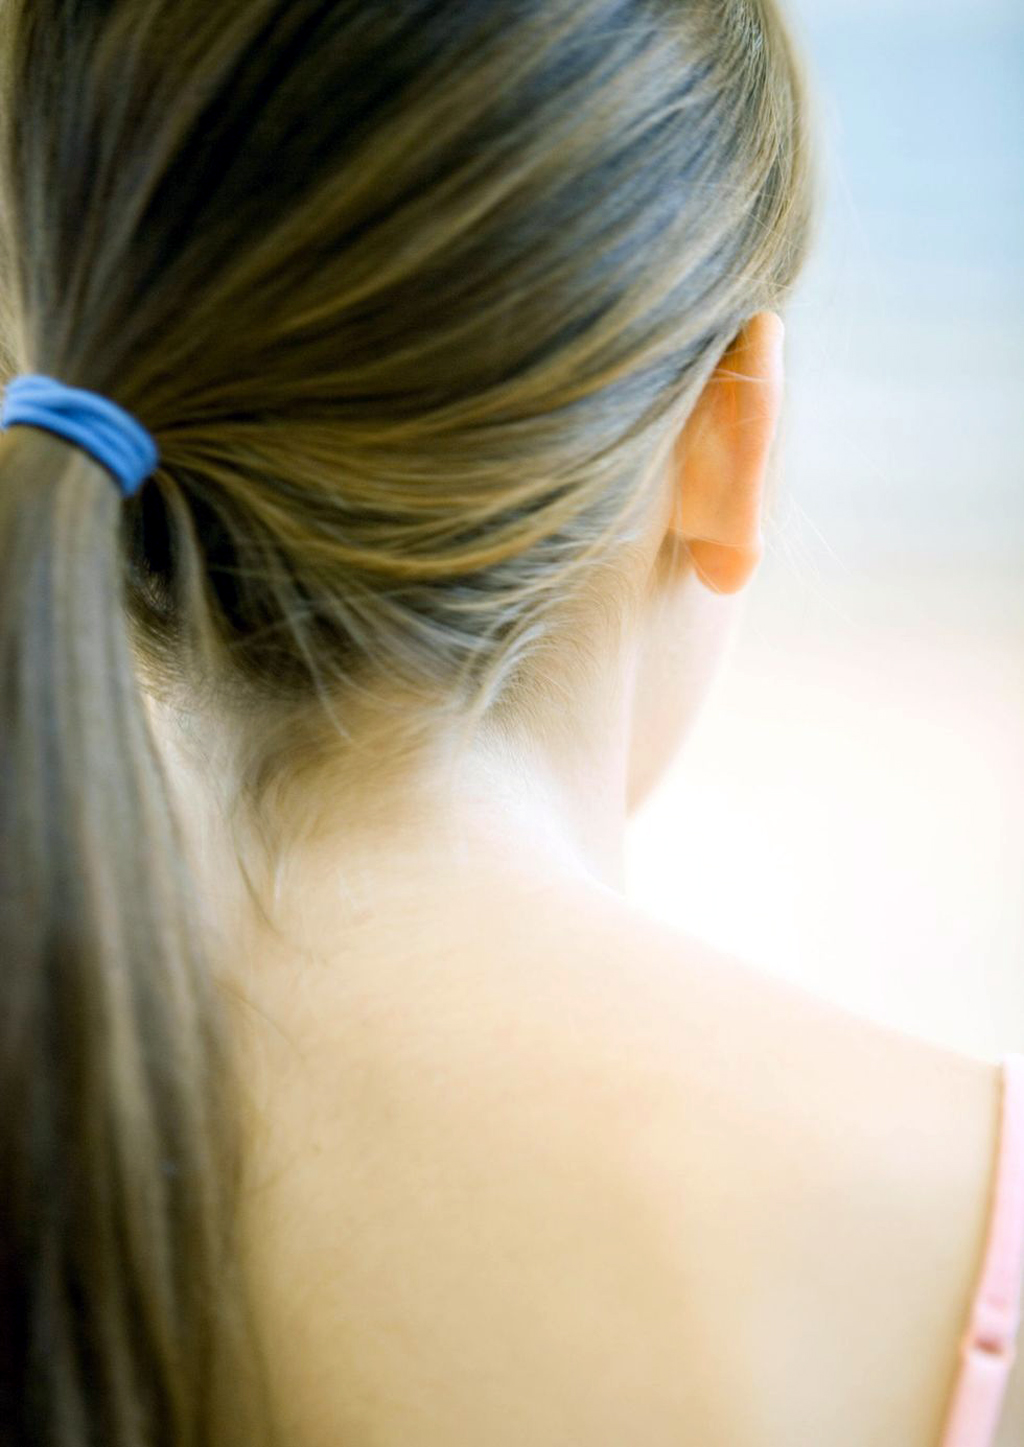 10 Worst Things You Do to Your Hair